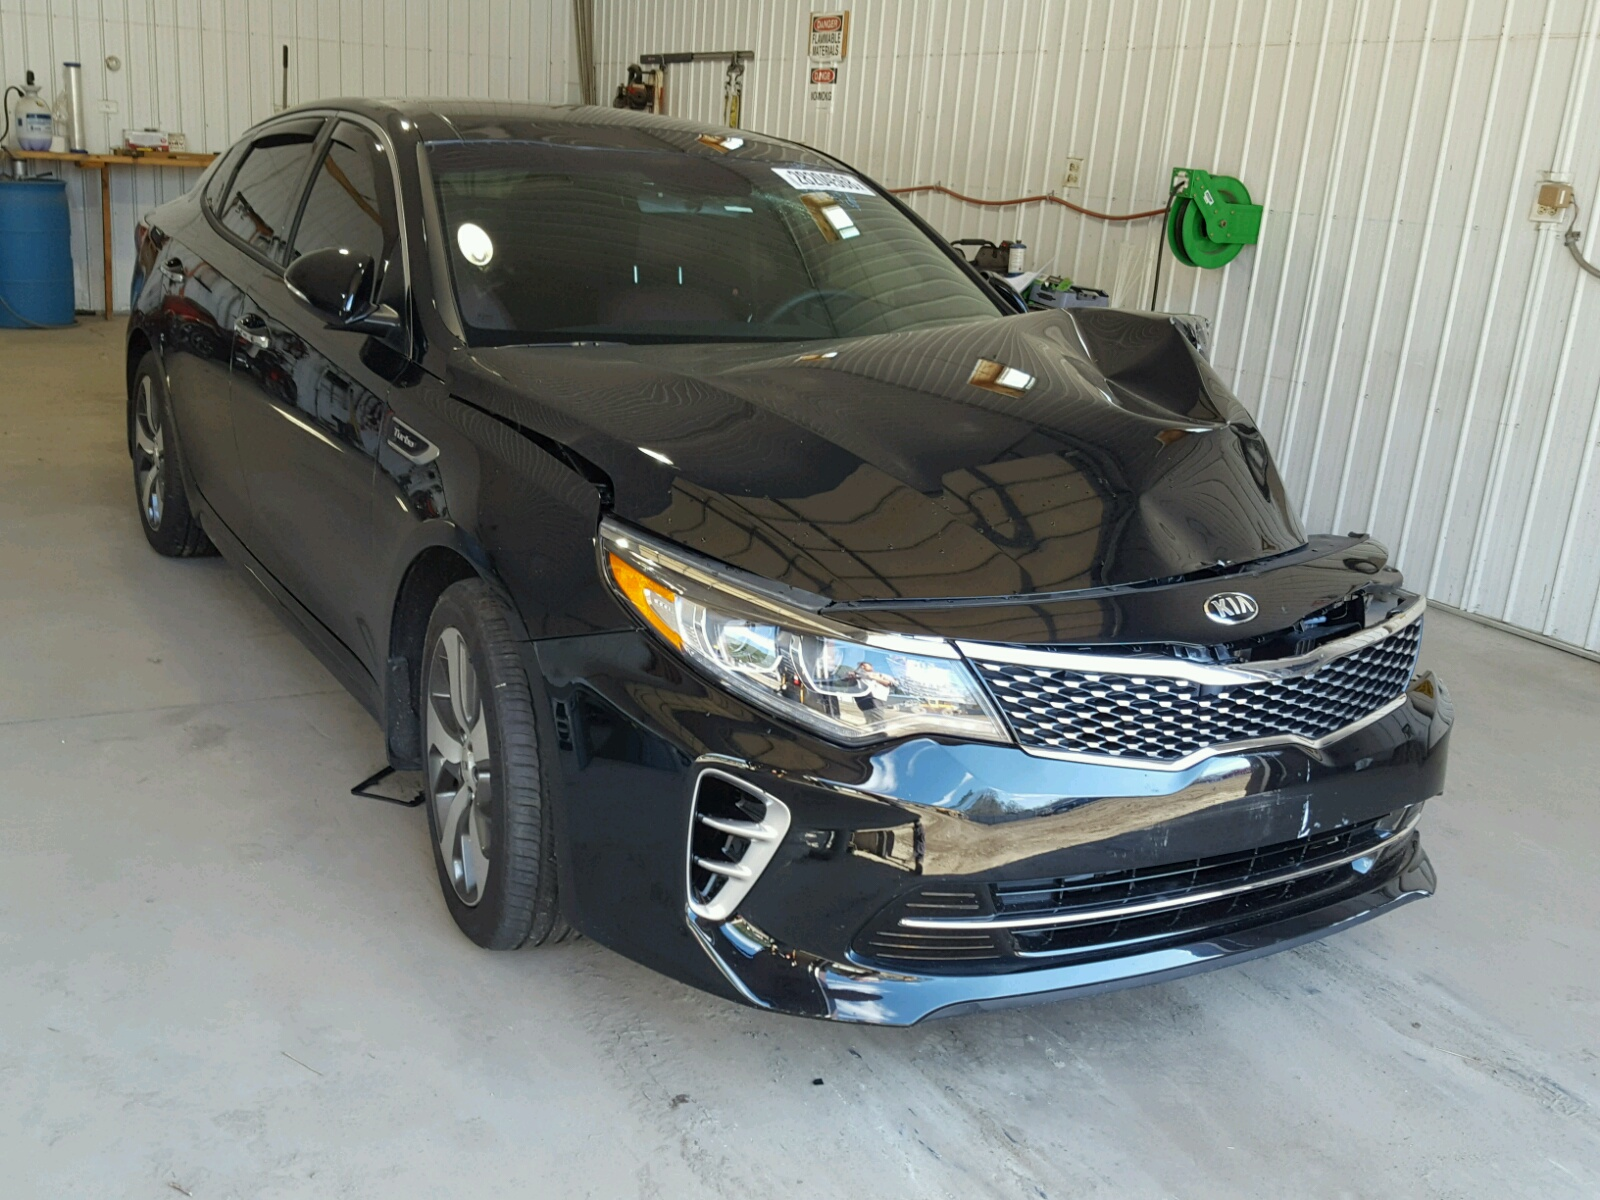 a new dealer rouge of and welcome all baton about chevrolet is kia us car star